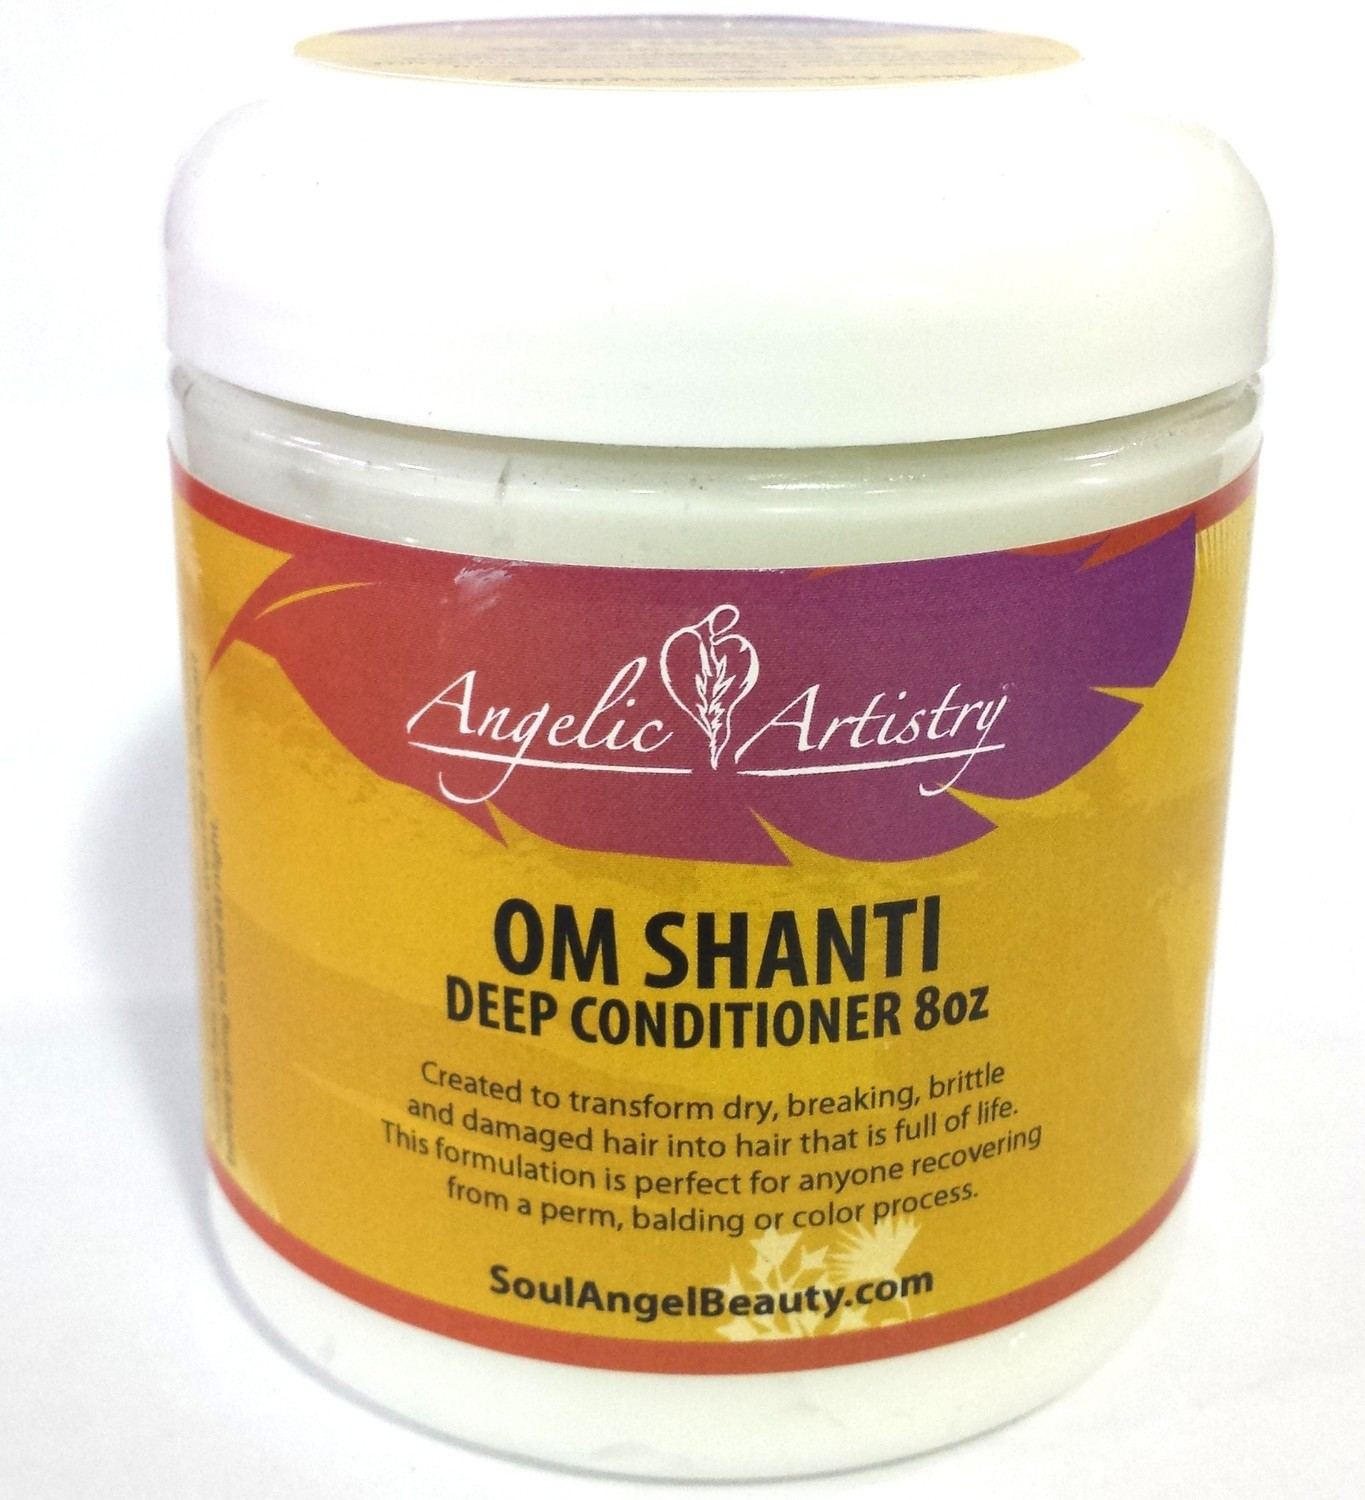 Angelic Artistry Om Shanti Deep Conditioner 8oz